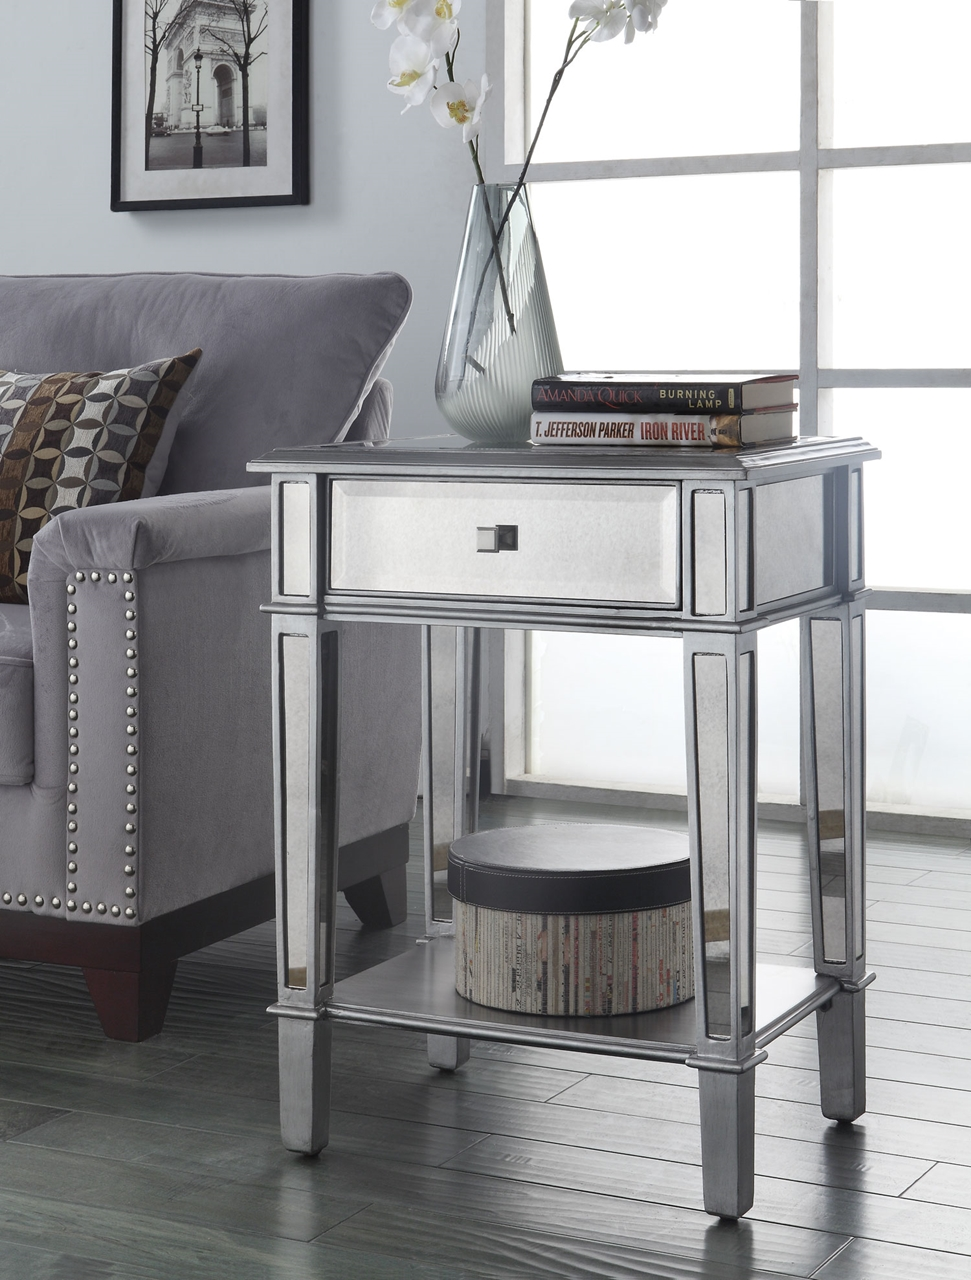 painted silver color small mirrored accent table with drawer and furniture shelves plus flower stand living room spaces ideas christmas covers runners ikea hacks storage above end